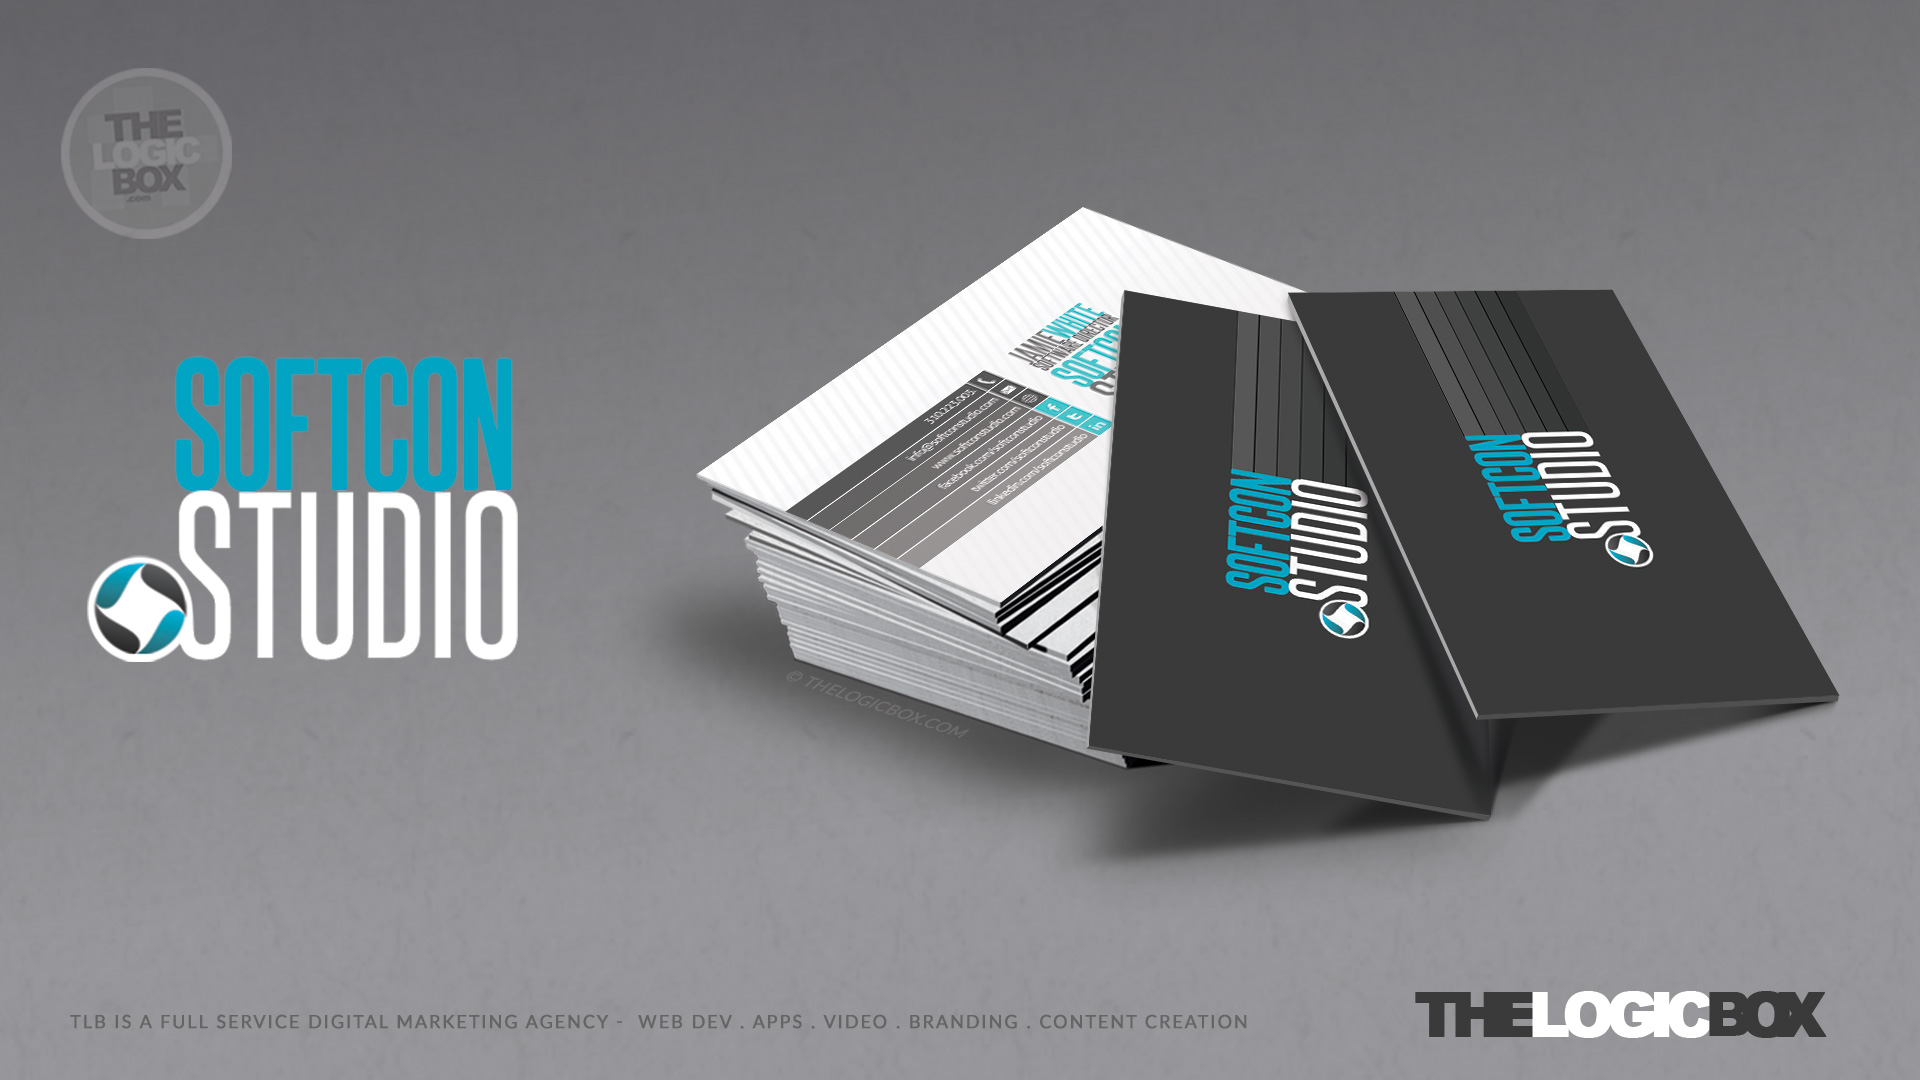 Business-Card-the-logic-box-agency-7-softcon-studio